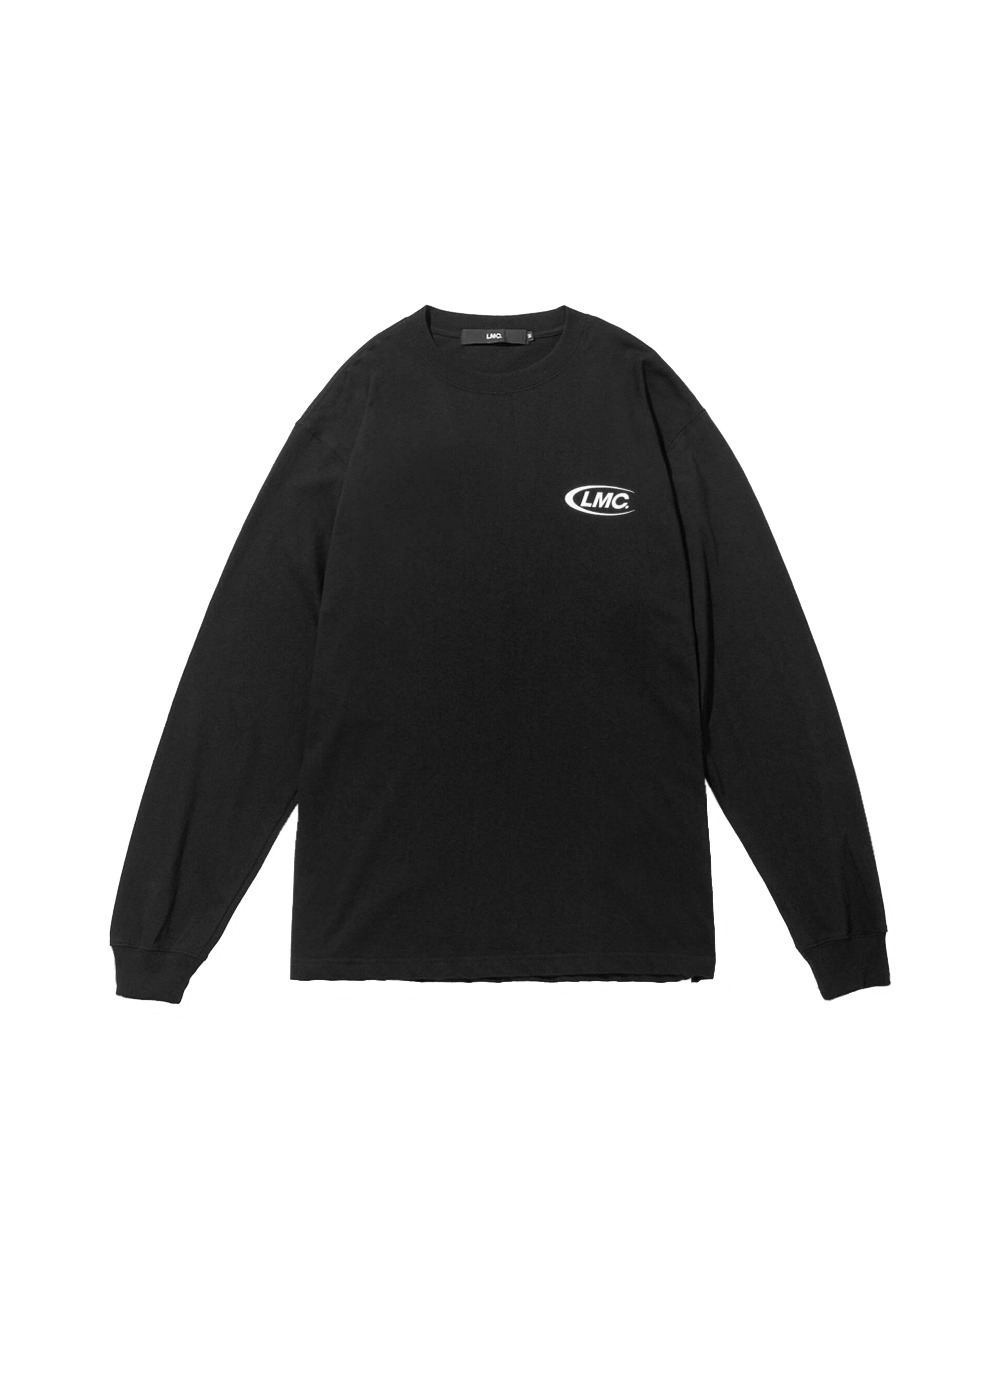 LMC TRIPLE CO LONG SLV TEE black